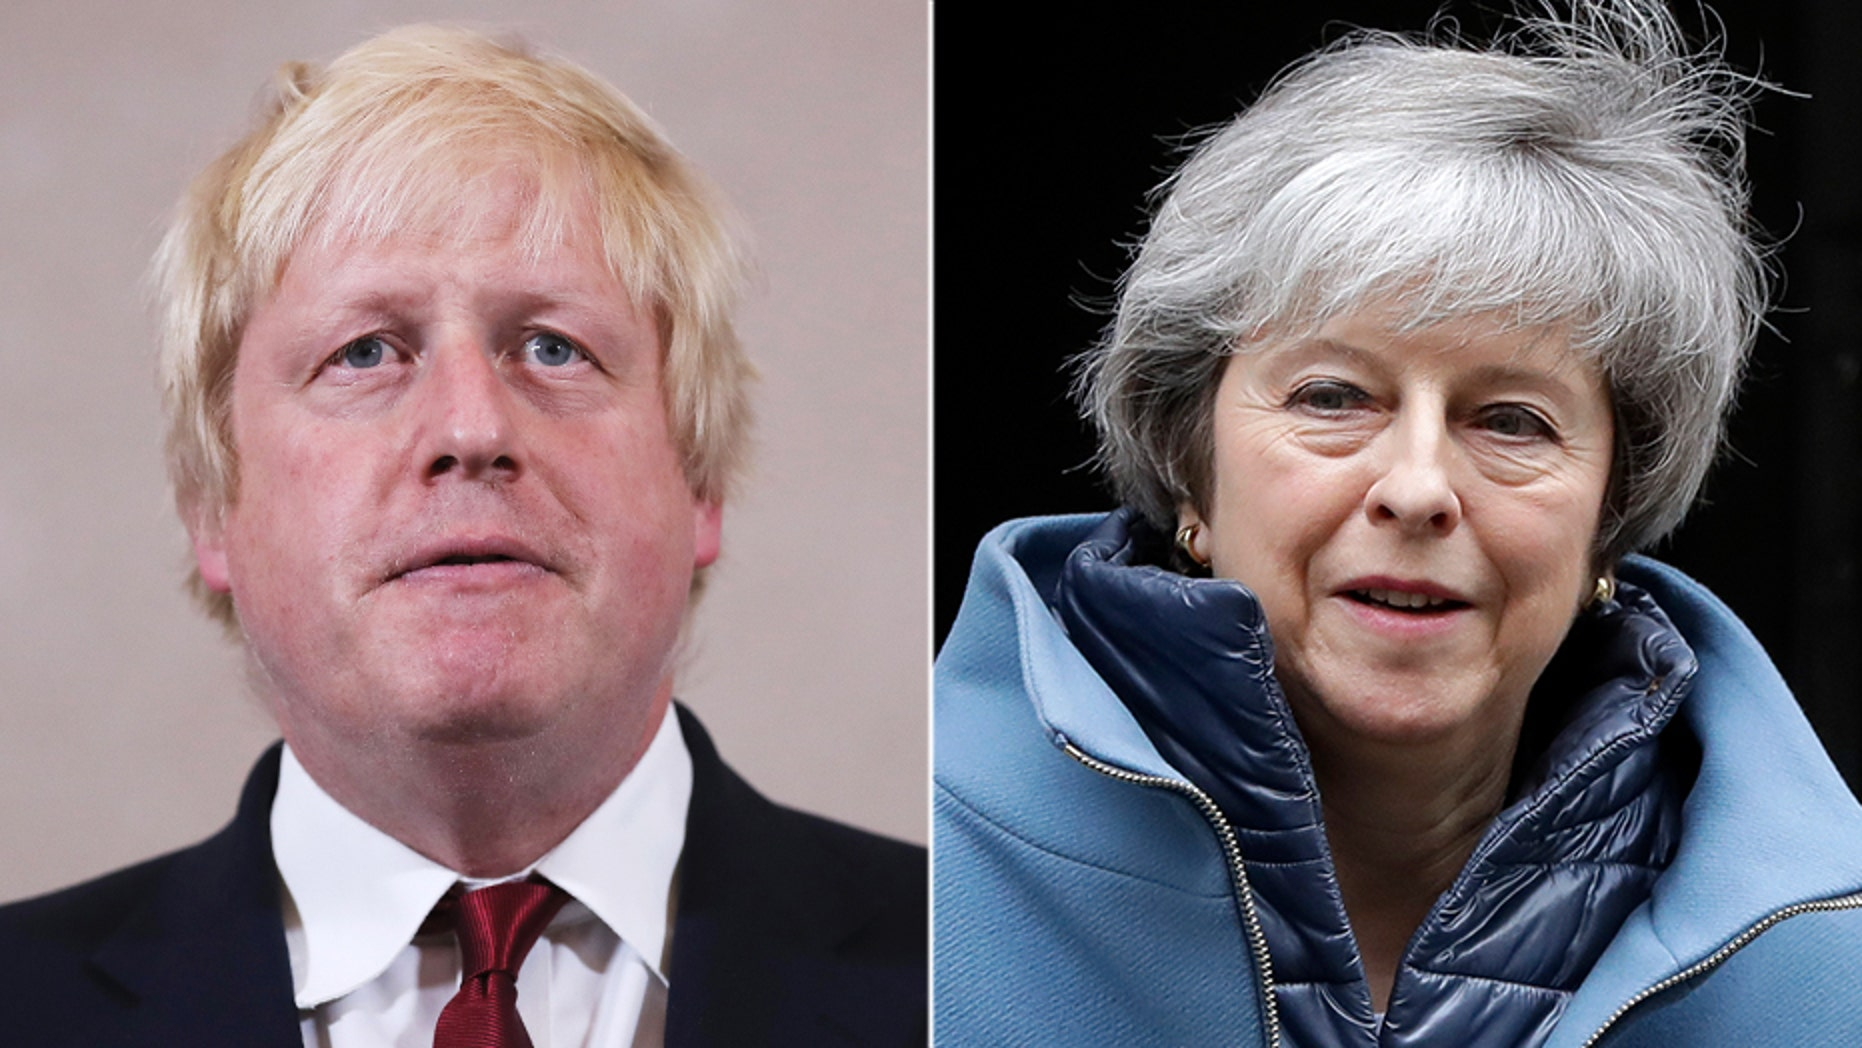 Theresa May (right) is preparing to resign as British Prime Minister as early as this summer, accordingto The Sun, in an attempt to make sure rival Boris Johnson (left) does not get the job